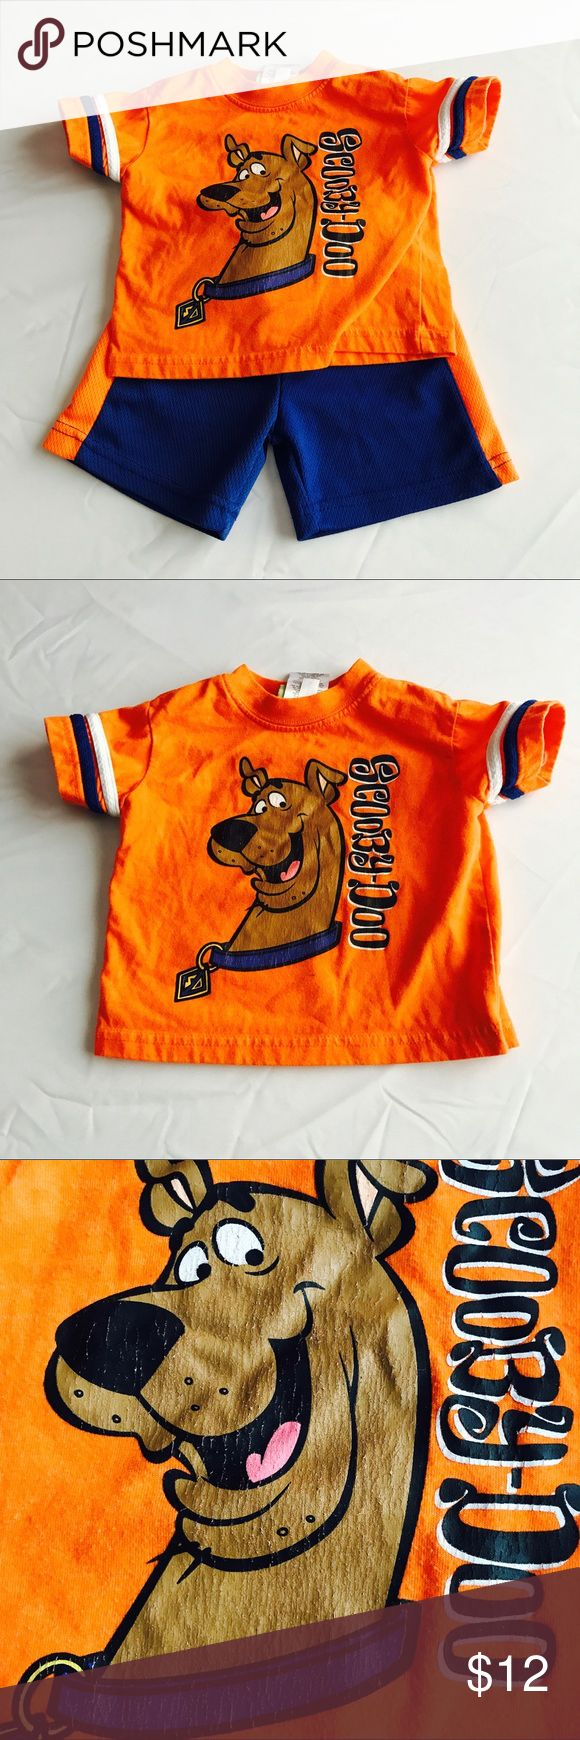 Scooby Doo Orange Blue Shorts Set 12m Scooby Doo Orange Blue Shorts Set 12m Great condition some wear on decal see pics 4 oz Scooby Doo Matching Sets